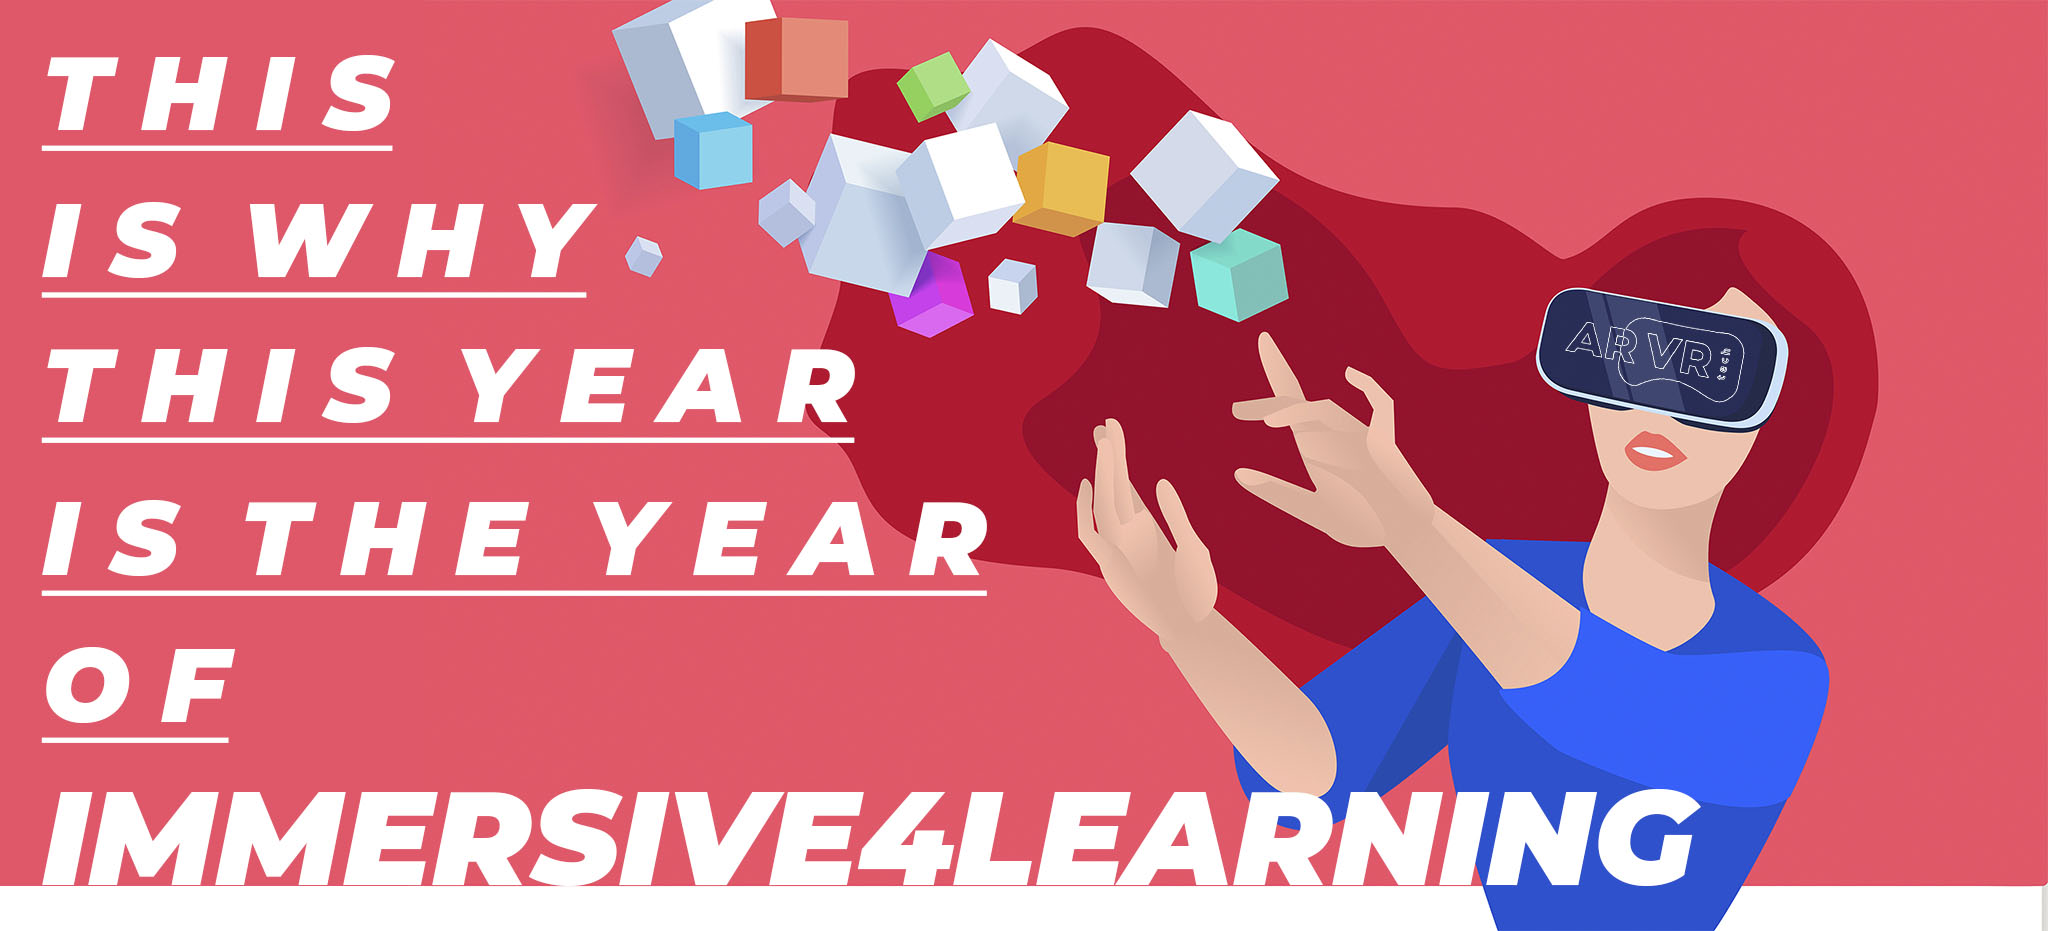 The Year of Immersive4Learning